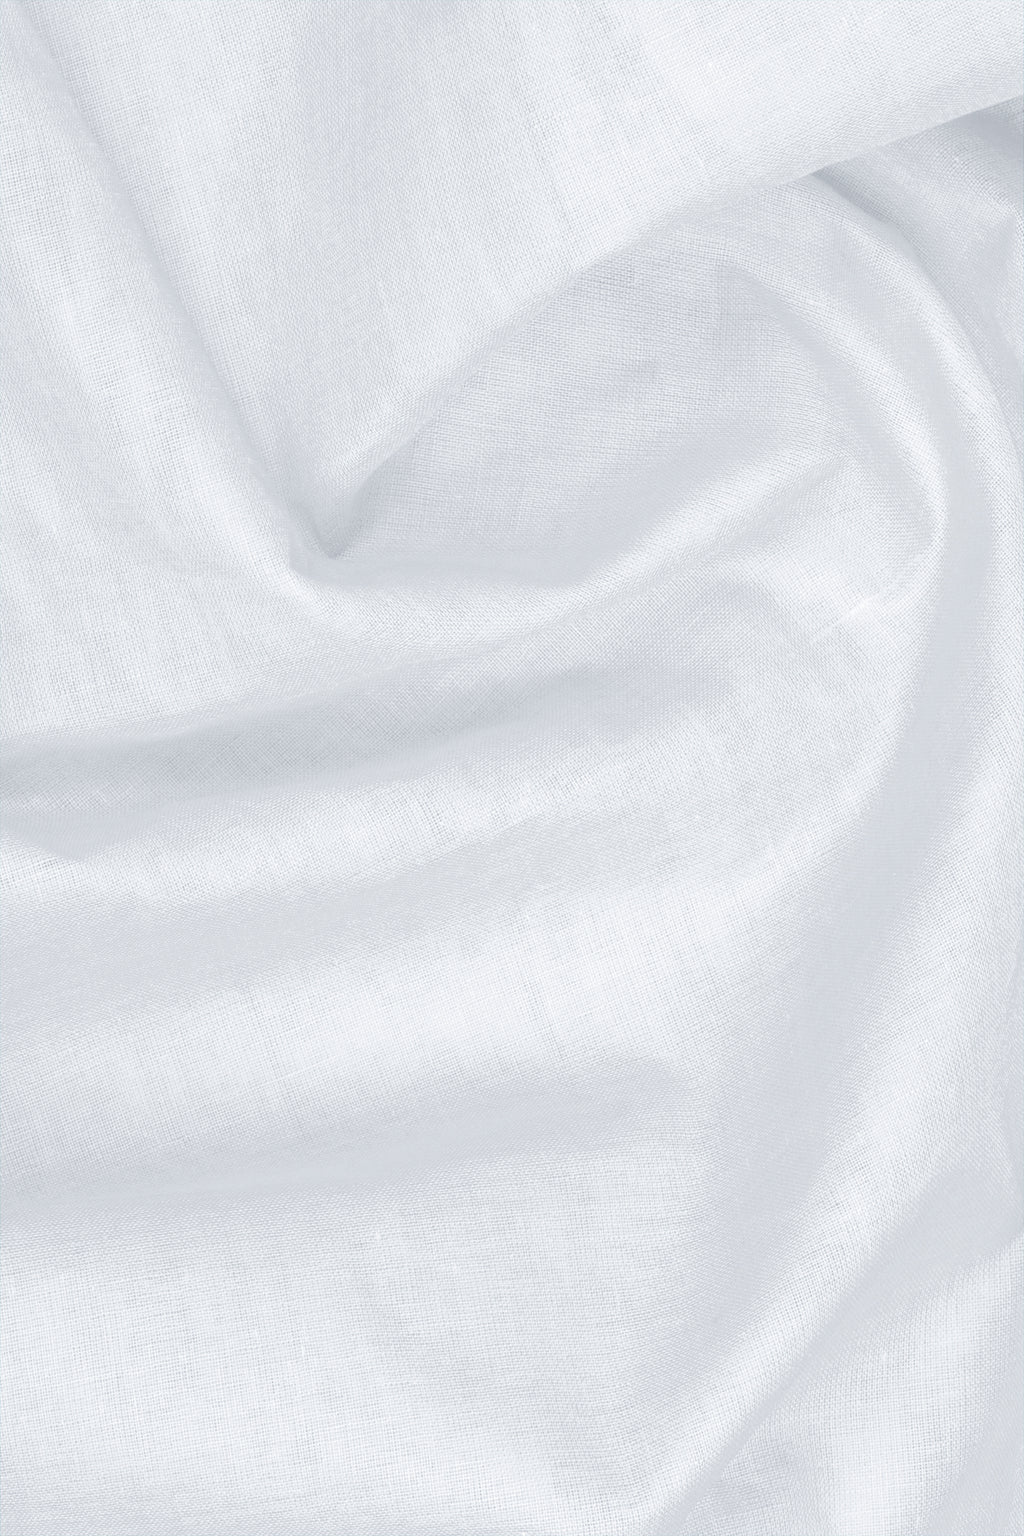 White Turban Cloth